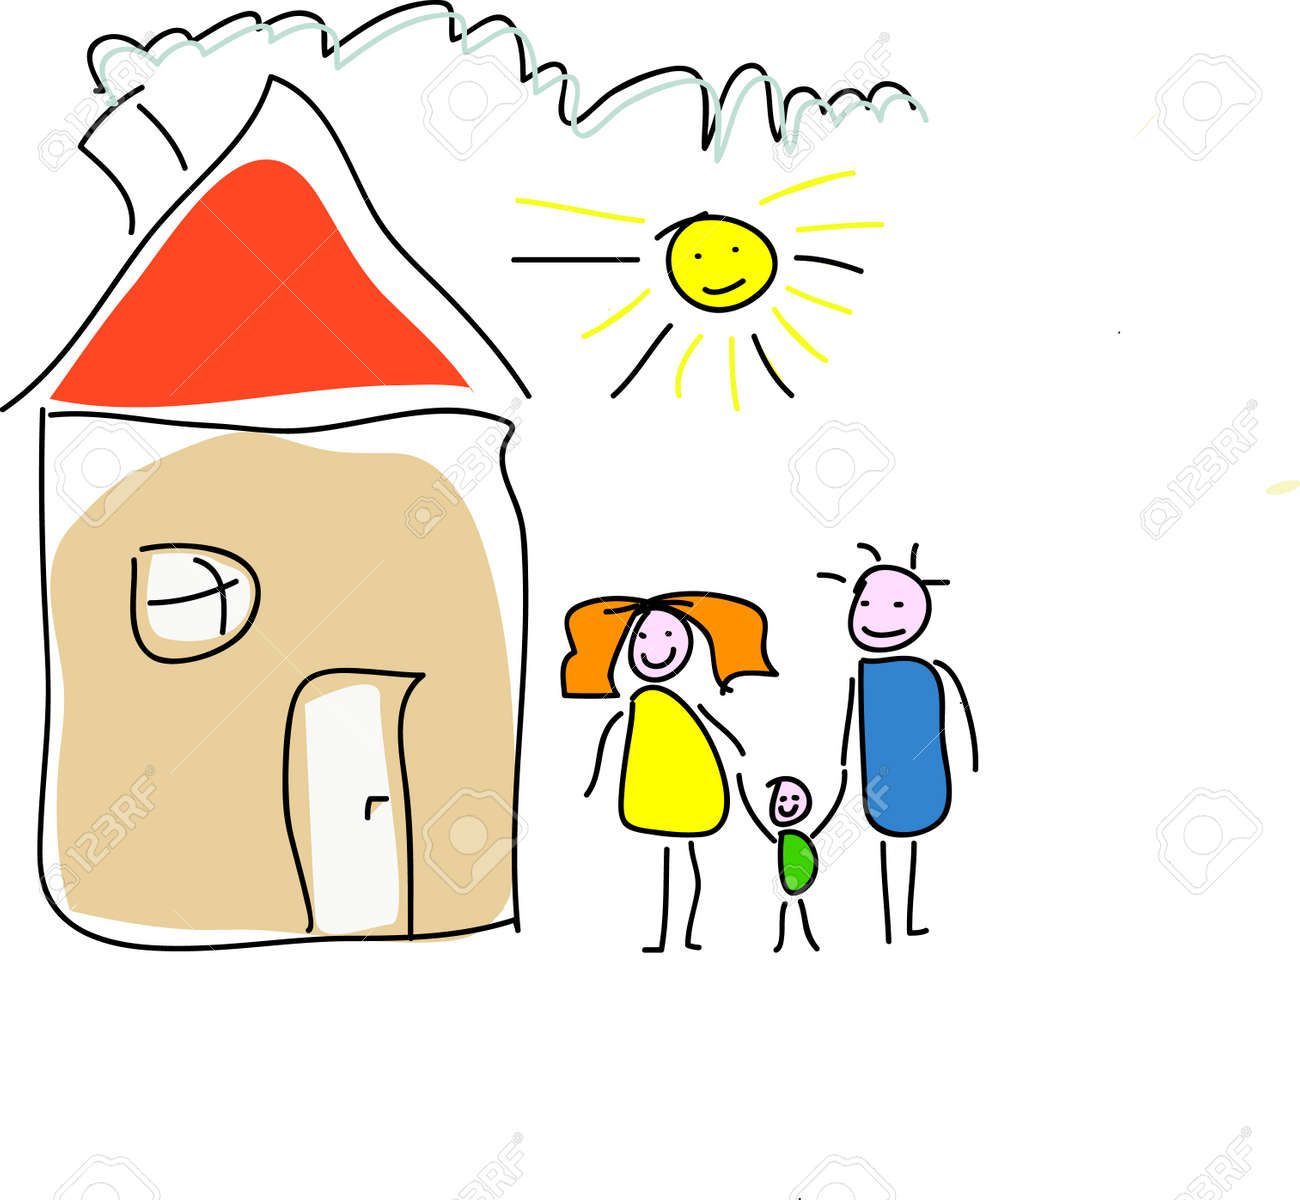 Image result for kids house drawings